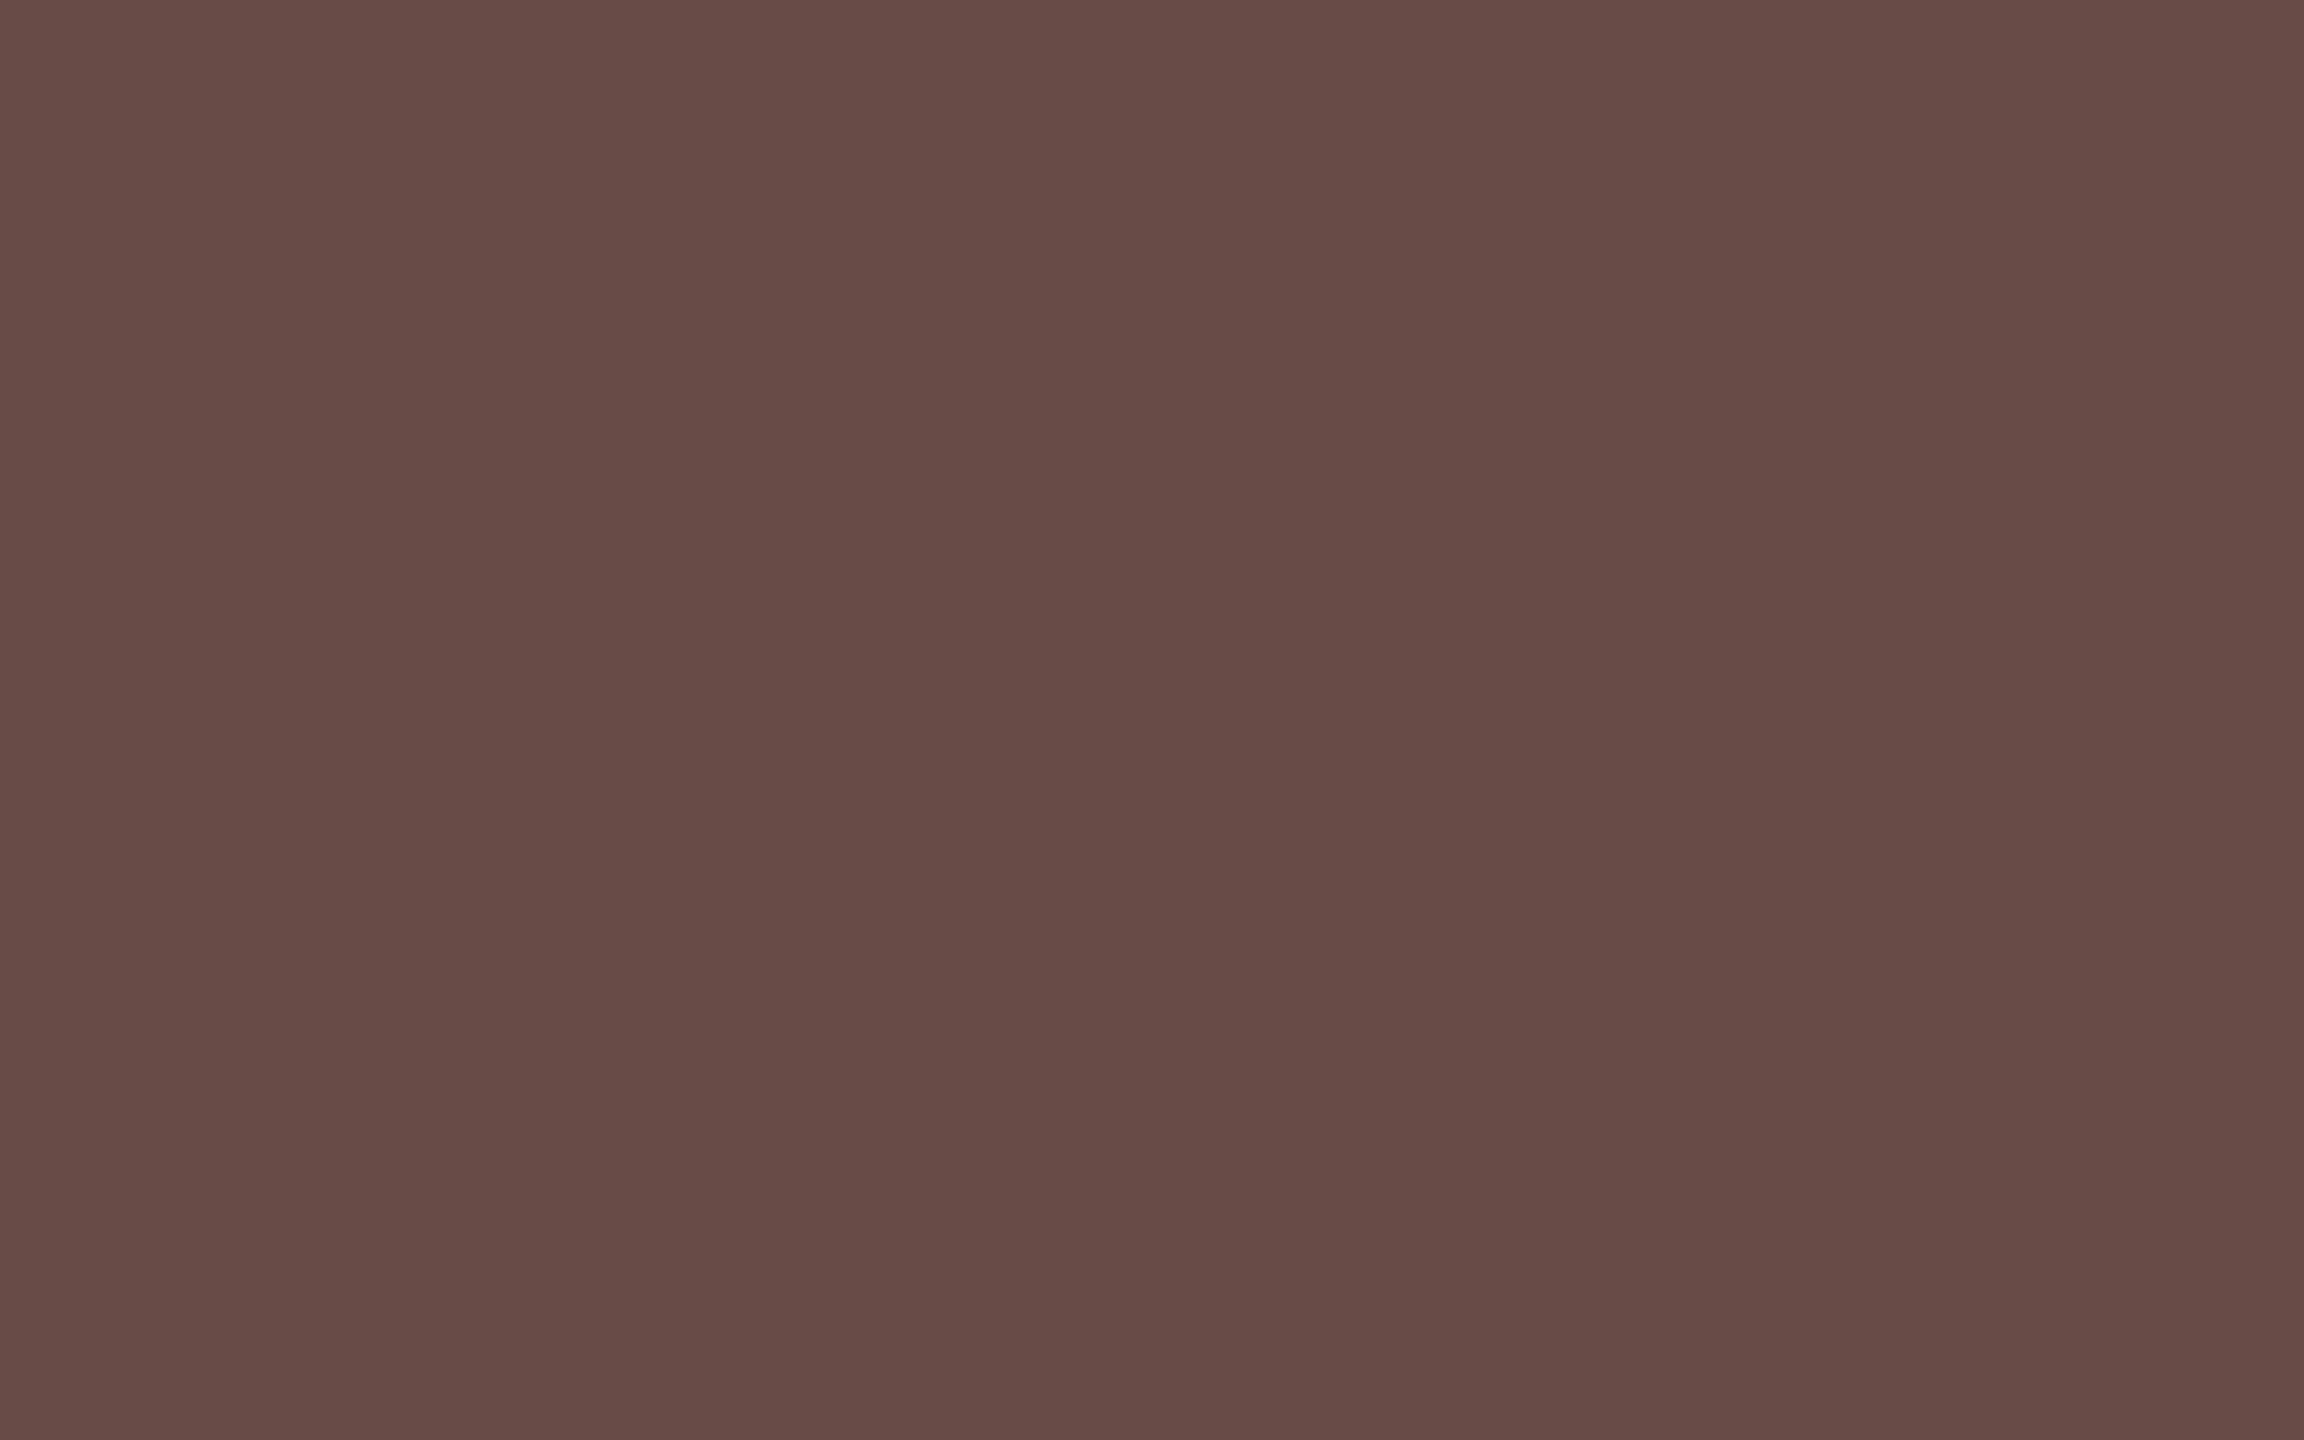 2304x1440 Medium Taupe Solid Color Background